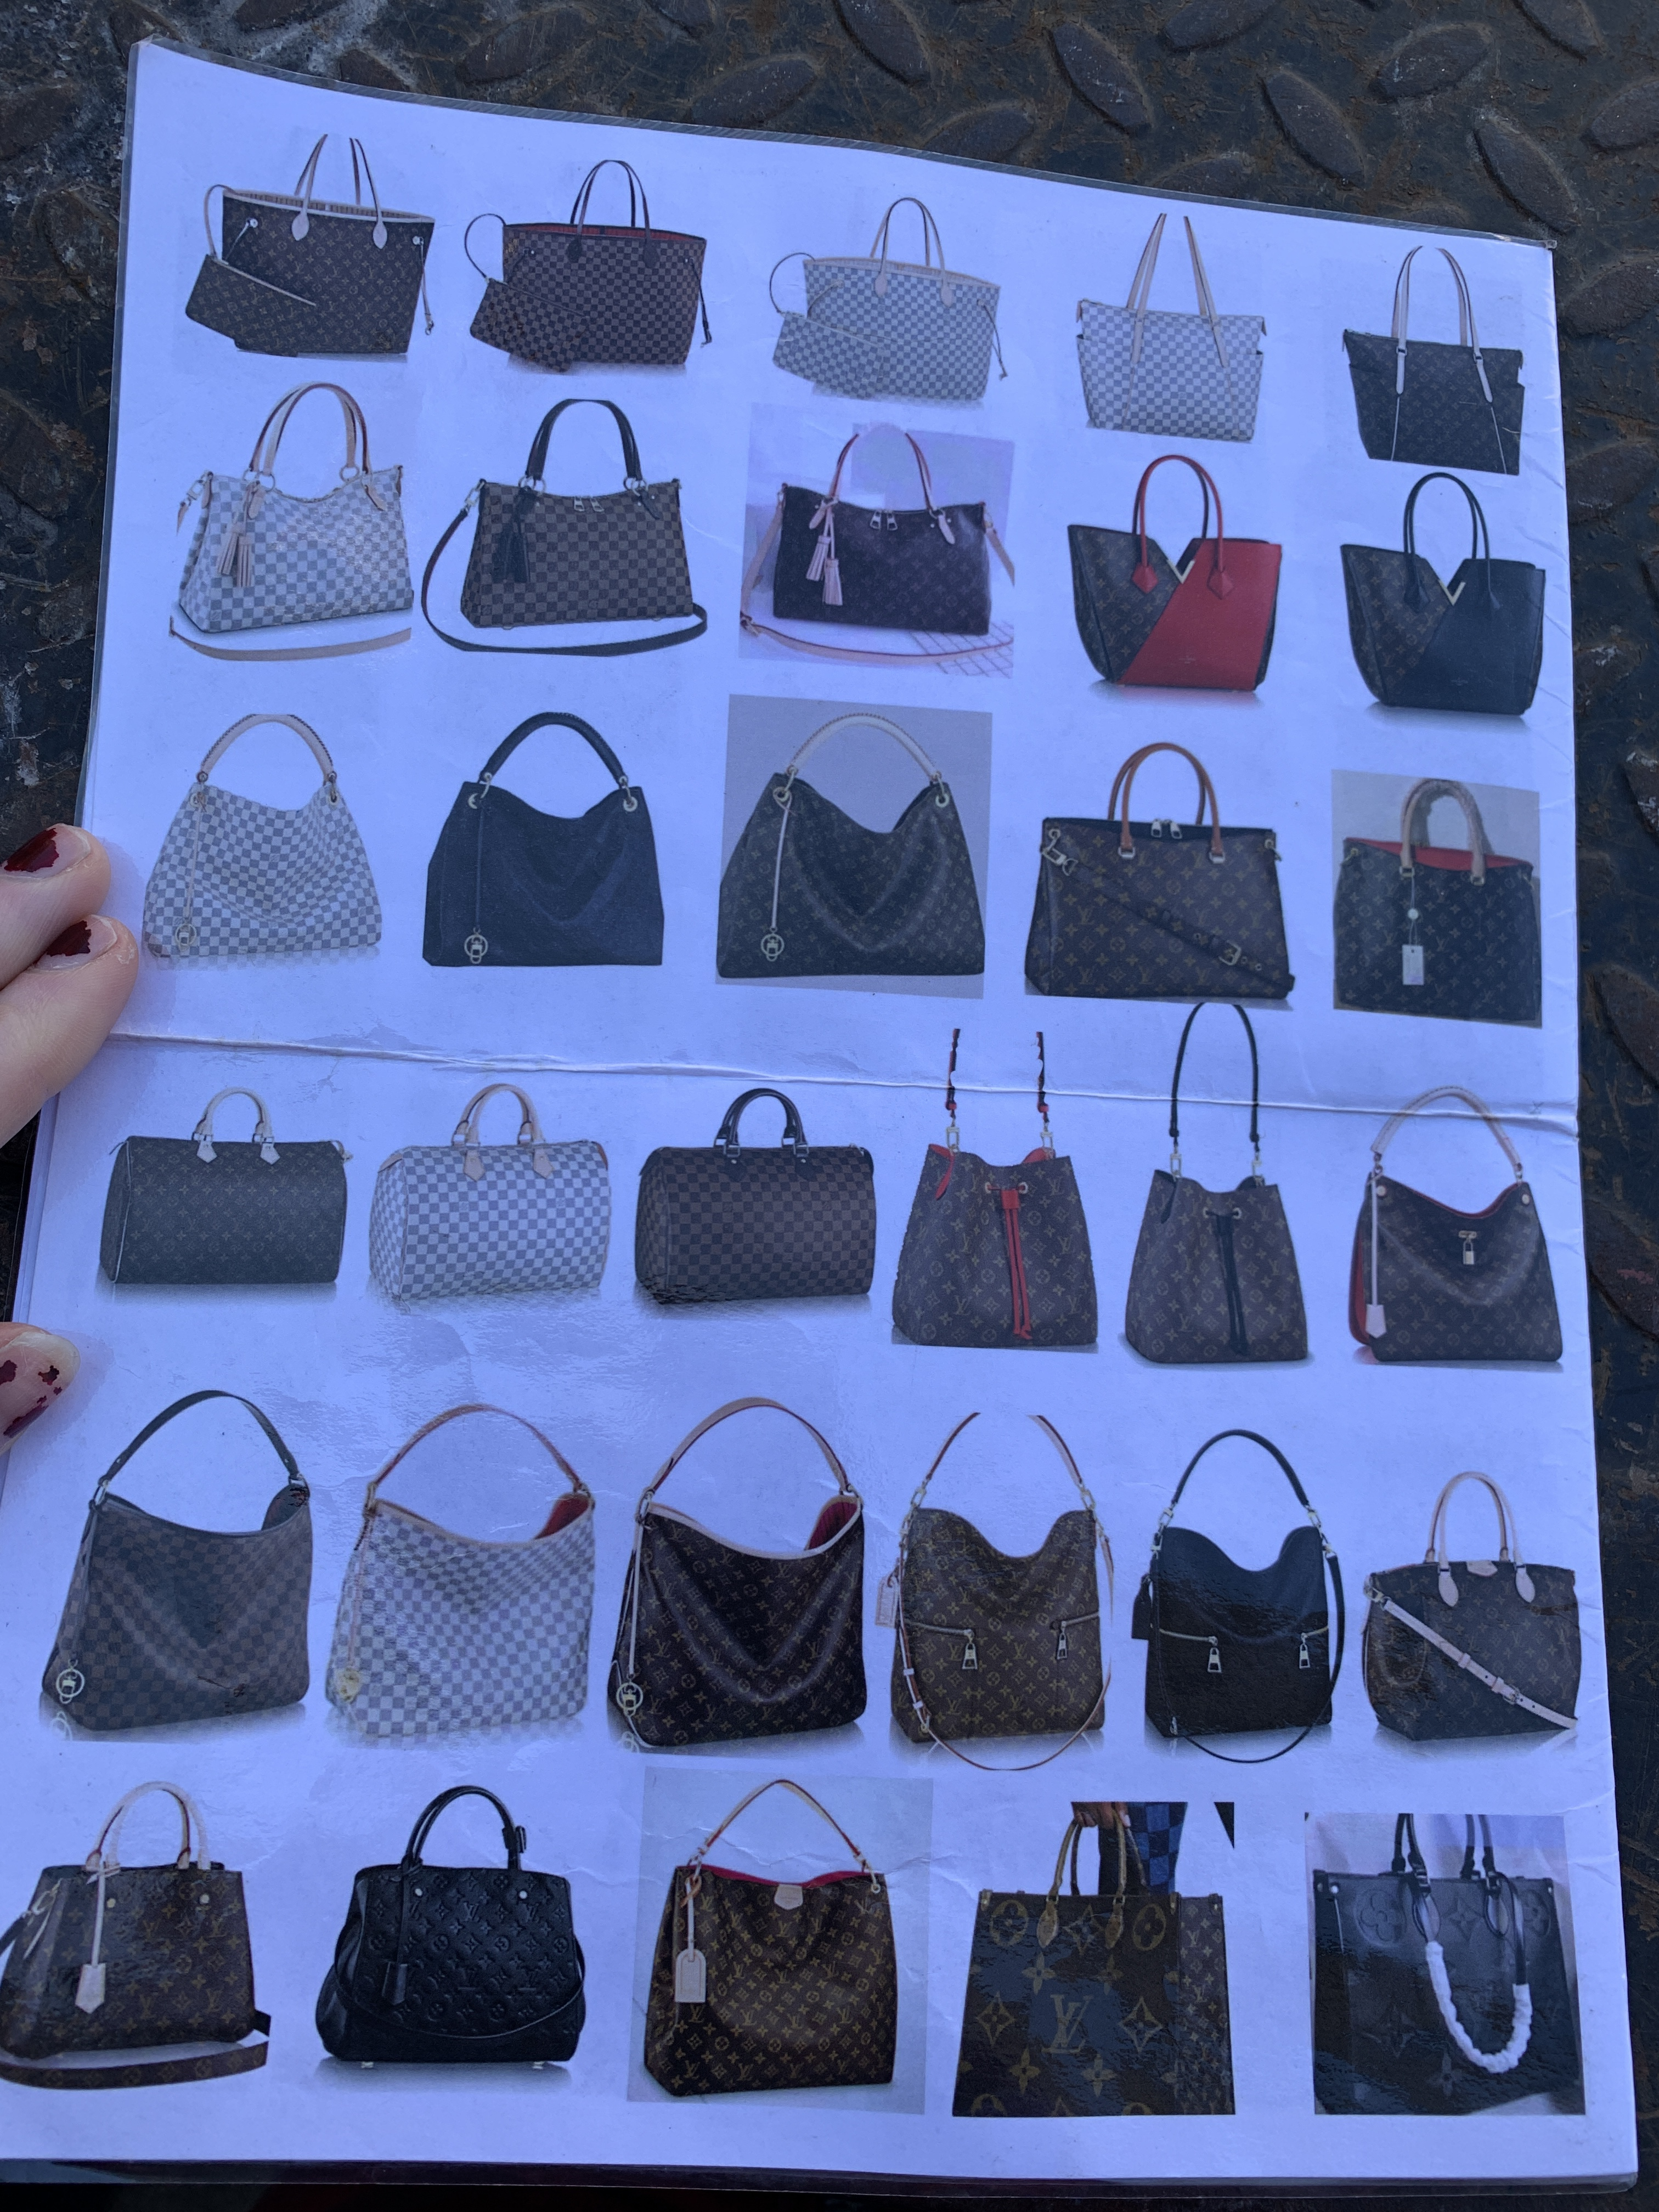 How to Find Designer Dupe Bags for $20 | Canal Street NYC | Lexington Ave NYC